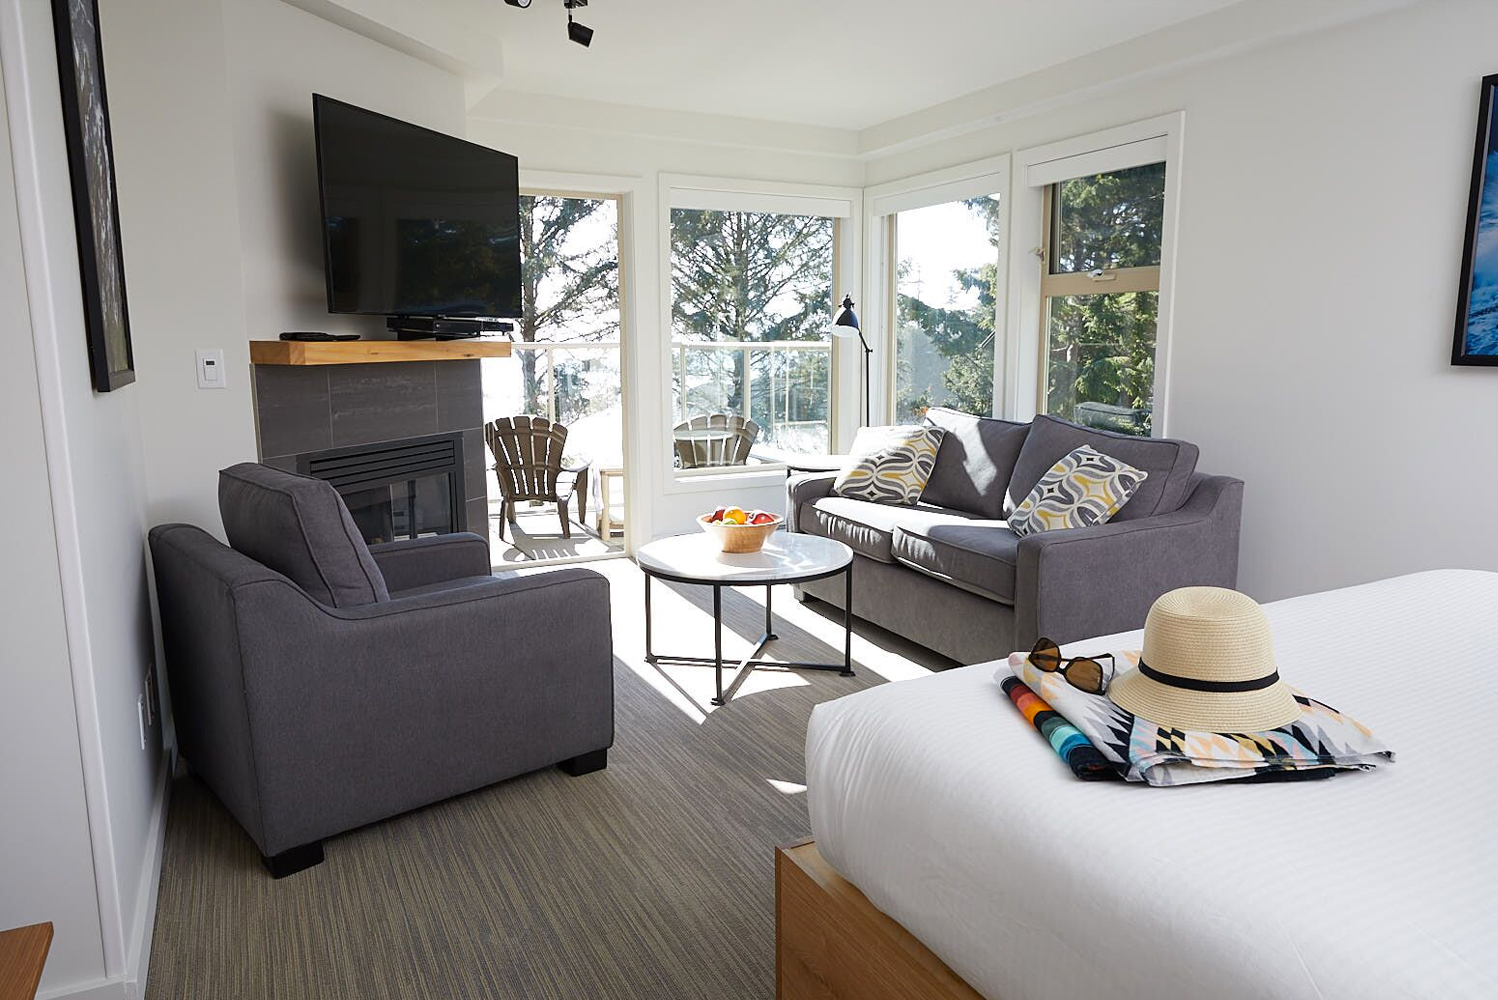 Pacific Sands Beach Resort debuted new beachfront lodge suites inspired by the surrounding Tofino landscape.